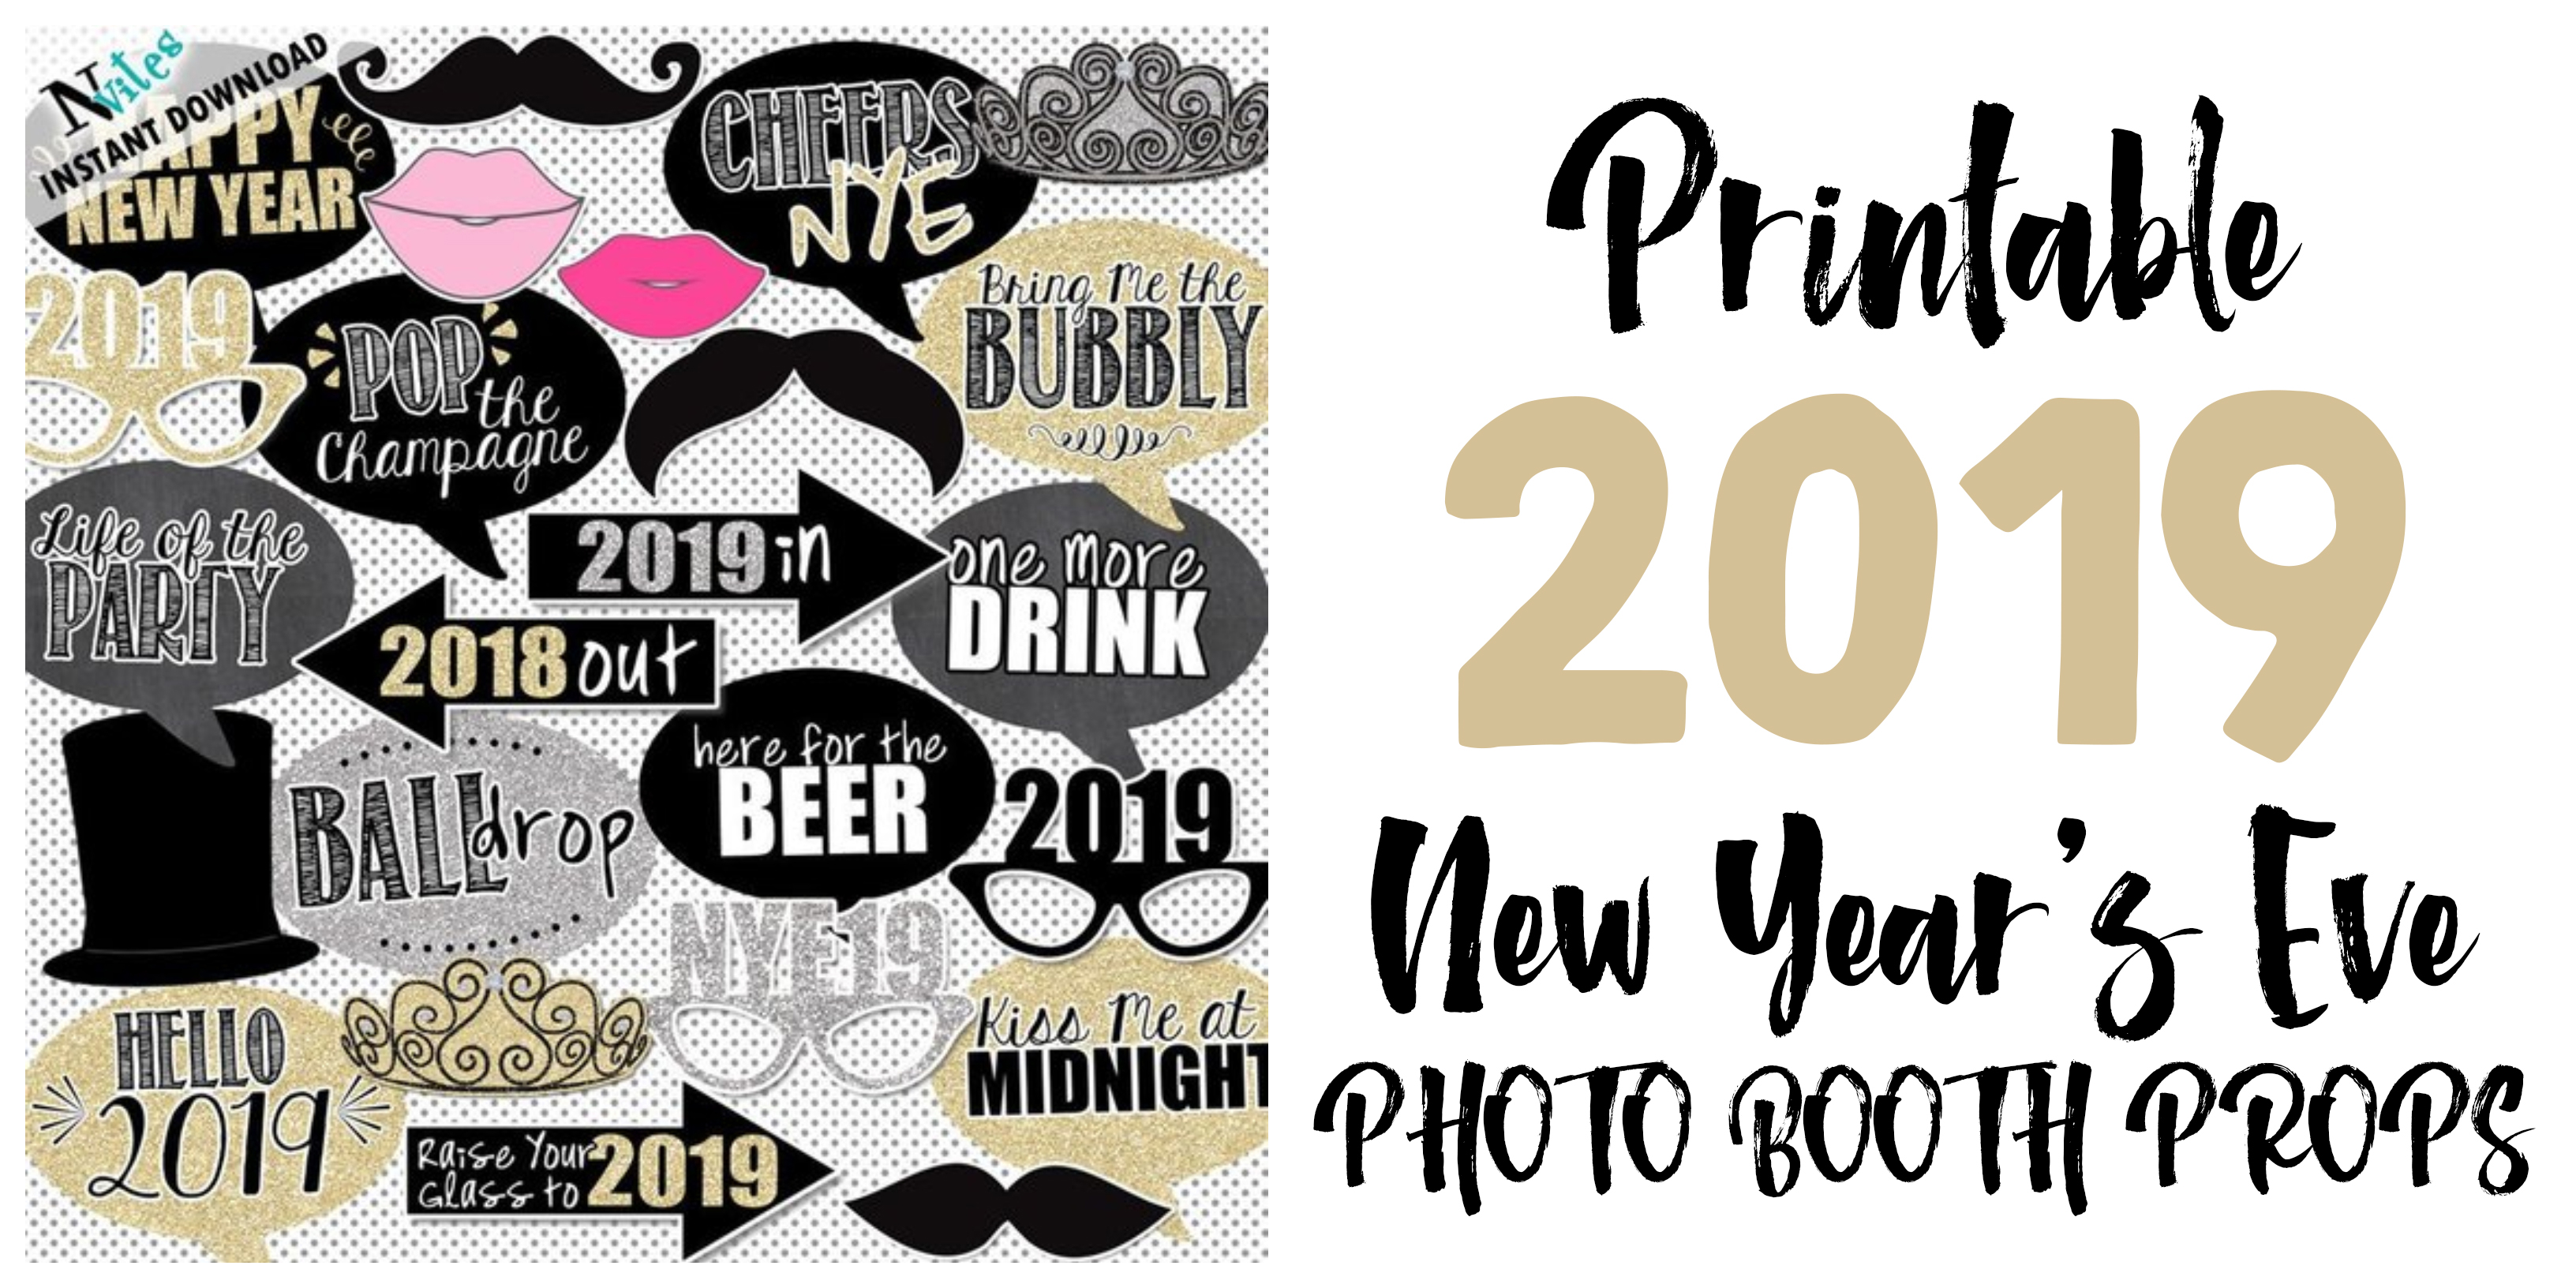 2019 New Years Eve Photo Booth Props Glitter N Spice